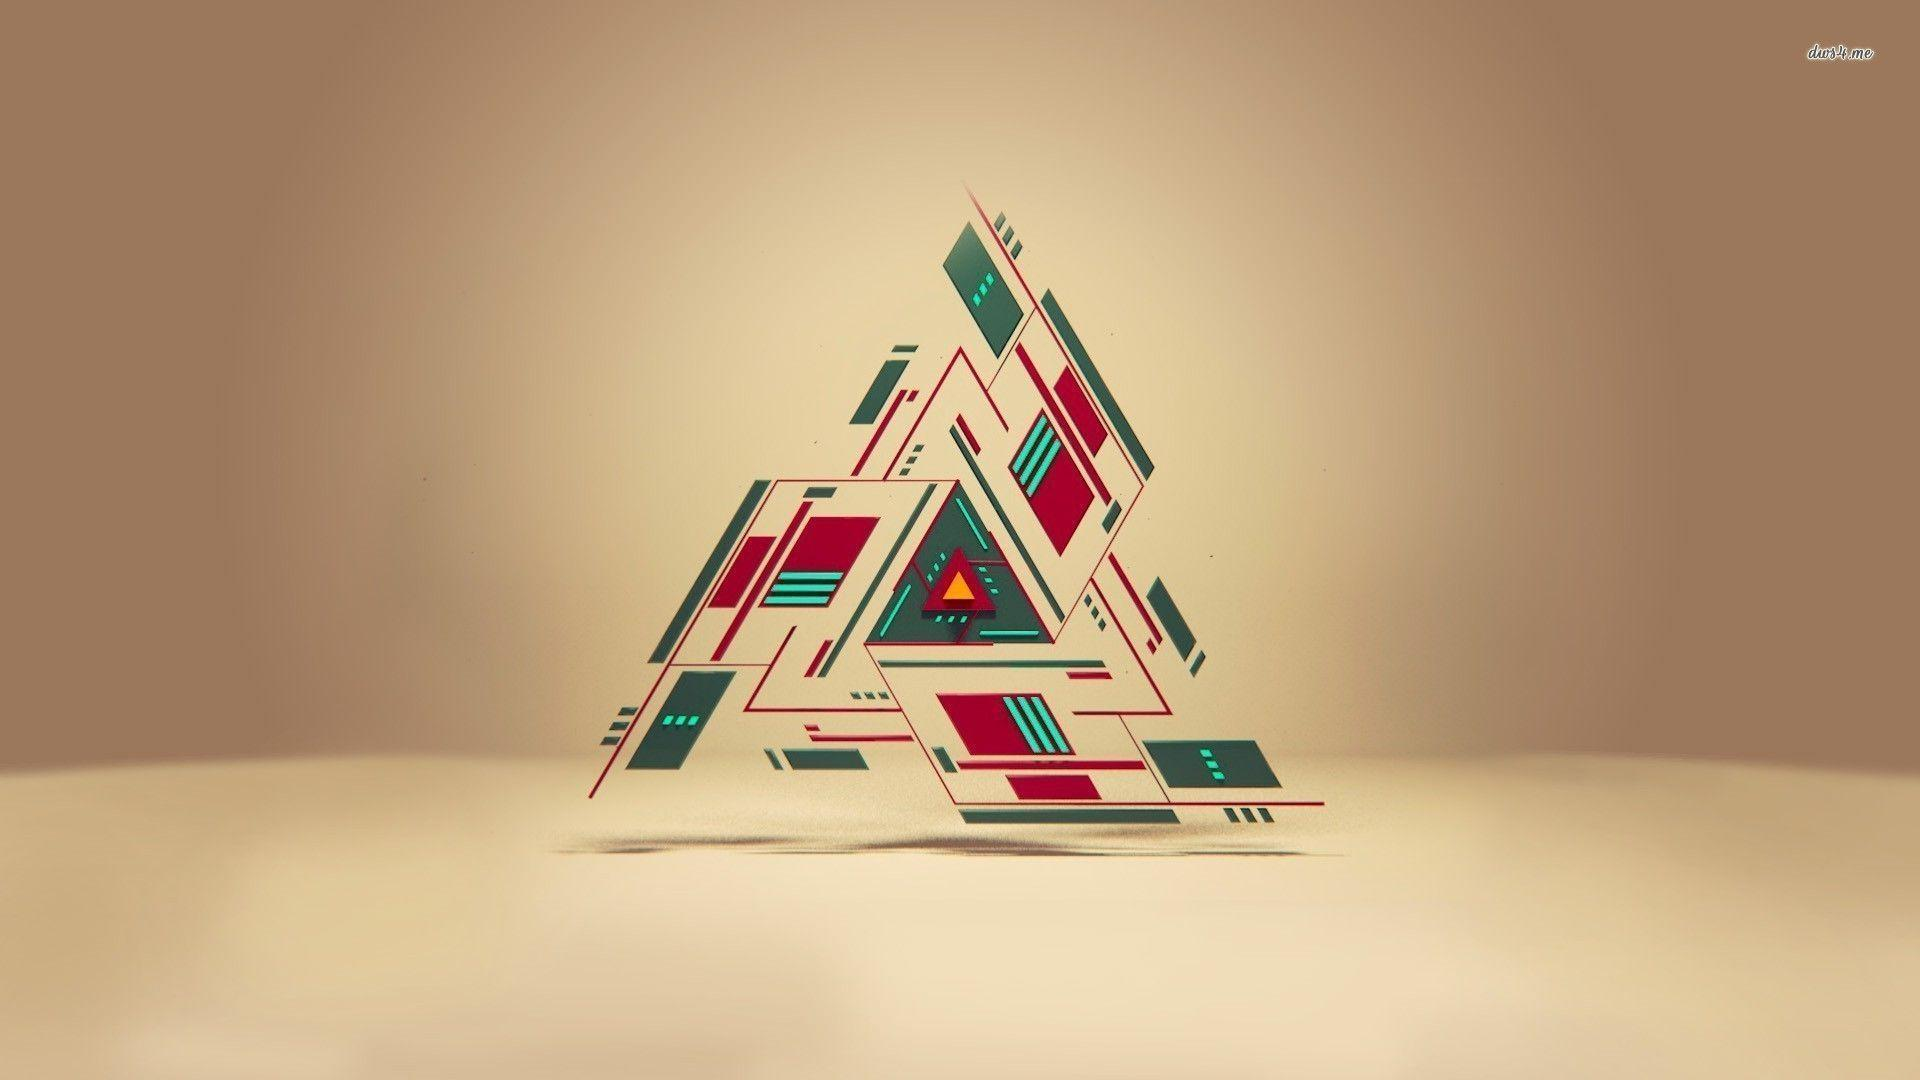 illuminati triangle wallpaper hd - photo #15